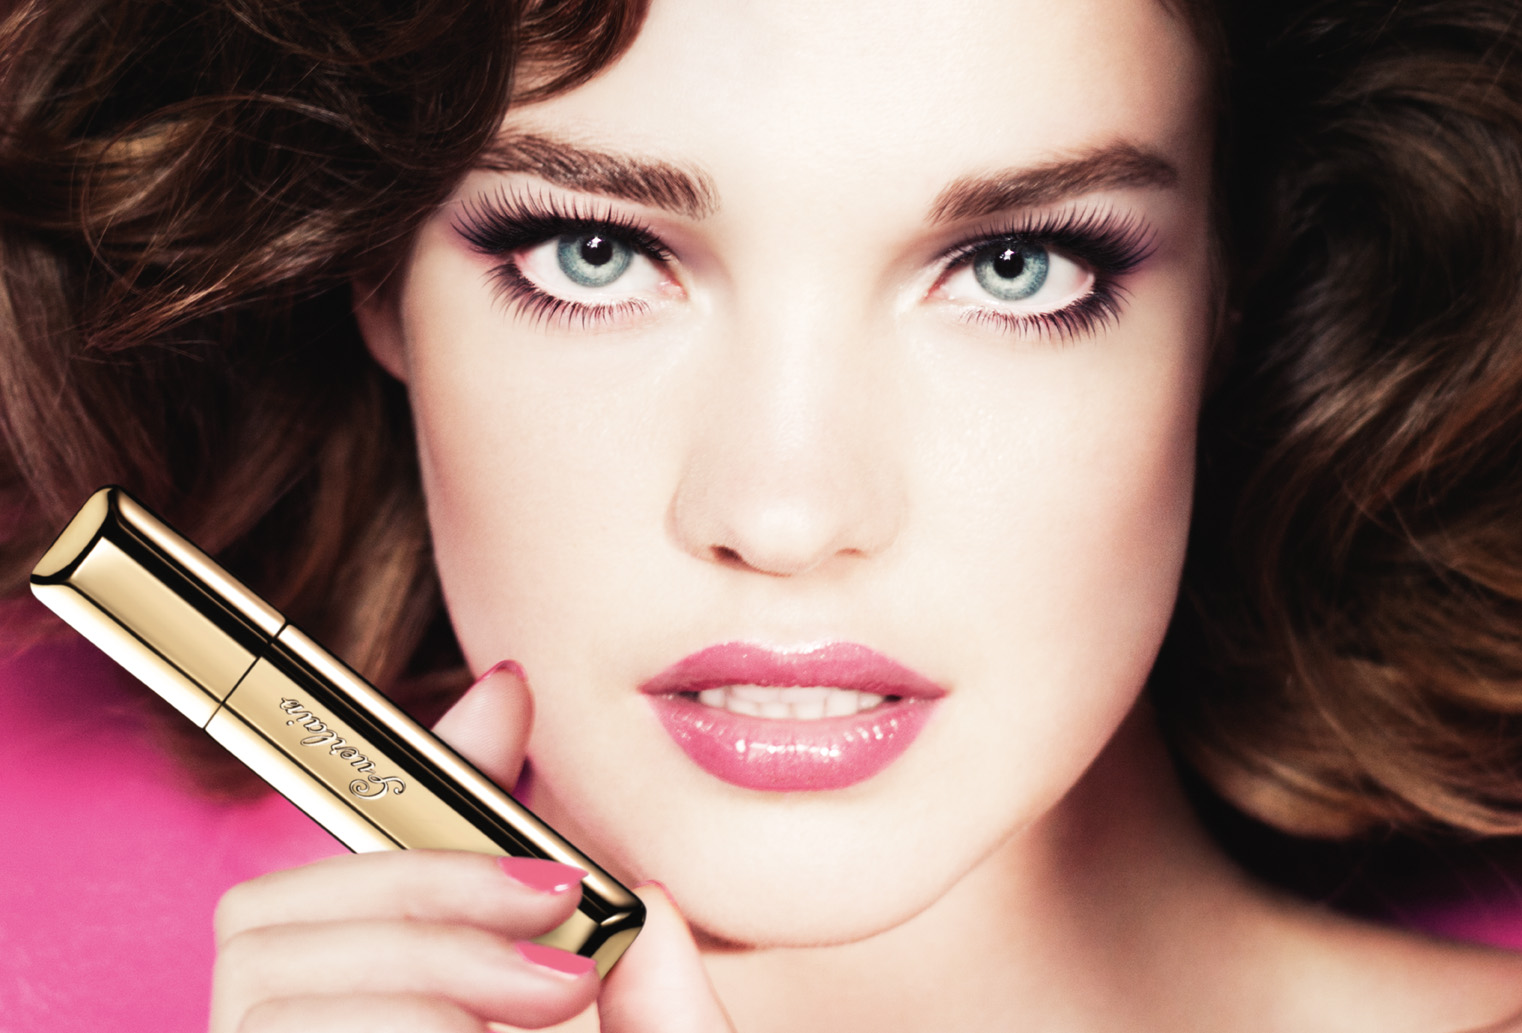 Guerlain Makeup Collection Spring/Summer 2013